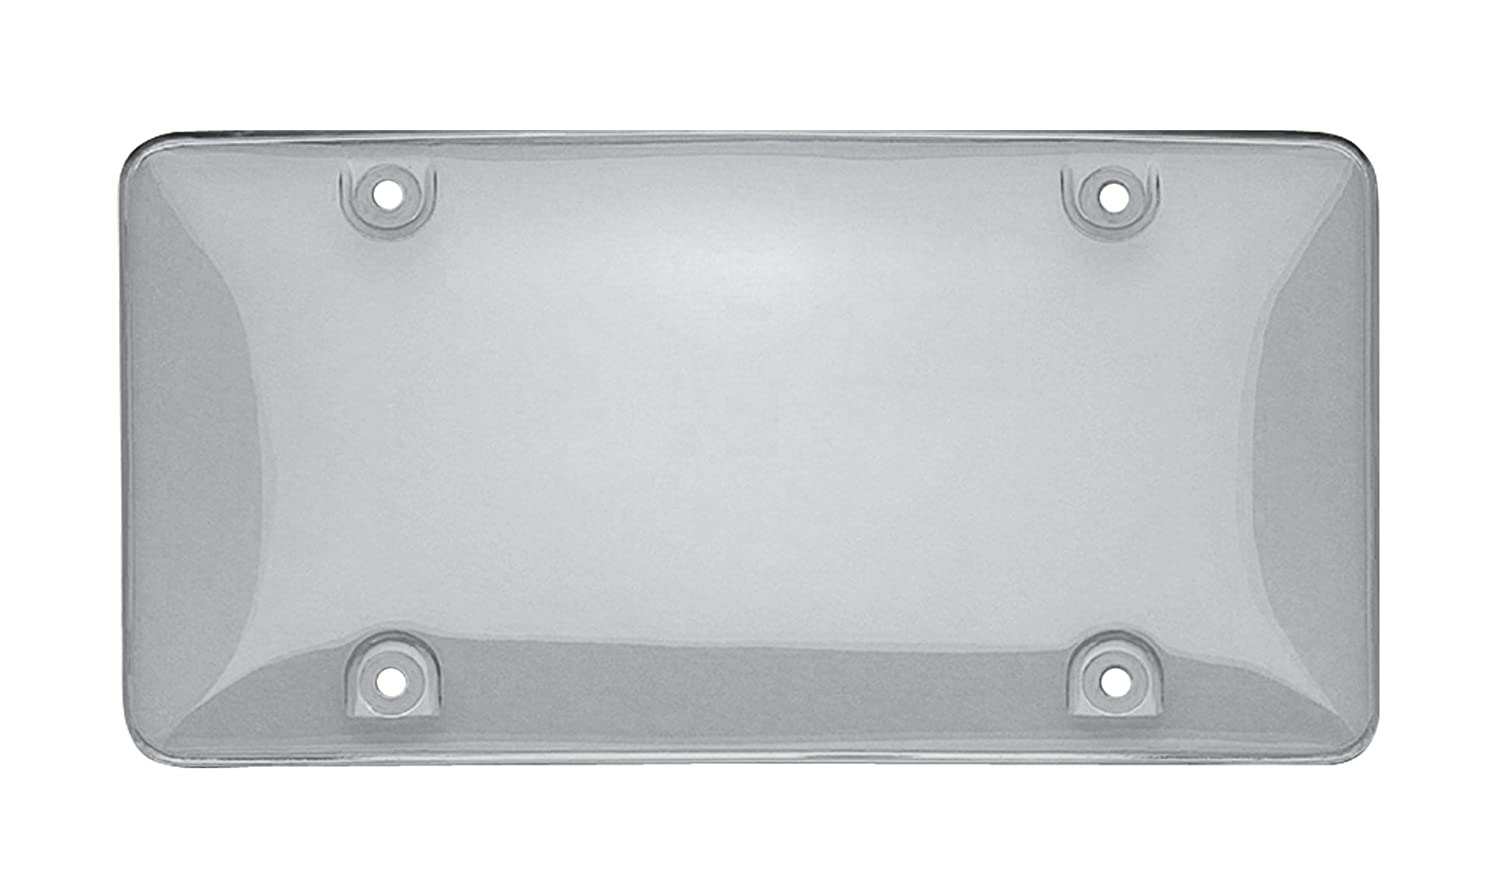 Smoke Cruiser Accessories 76200 Tuf Flat Shield